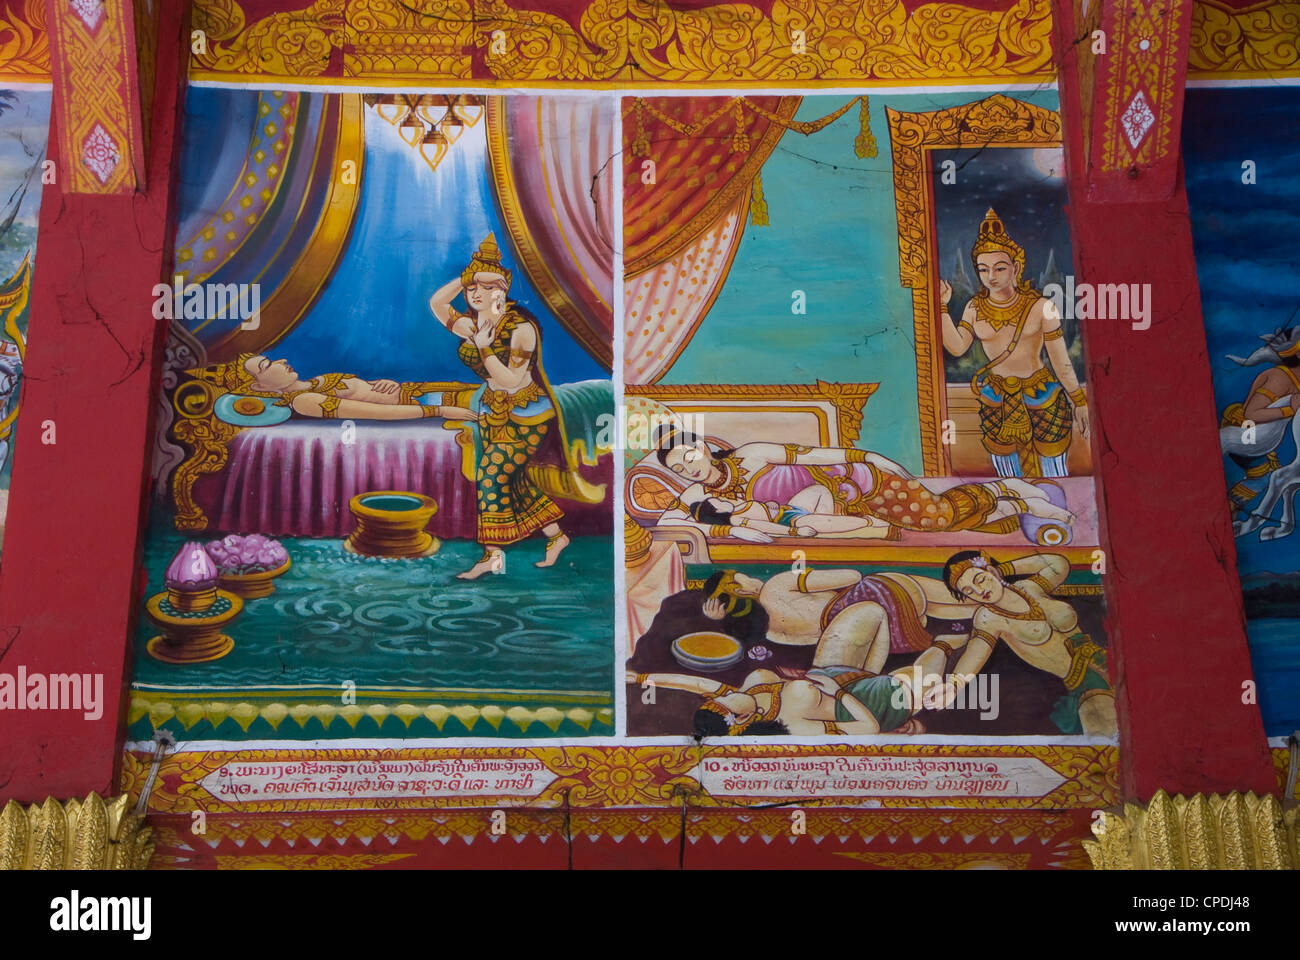 Panel paintings, Wat Ong Yeu, Vientiane, Laos, Indochina, Southeast Asia, Asia - Stock Image